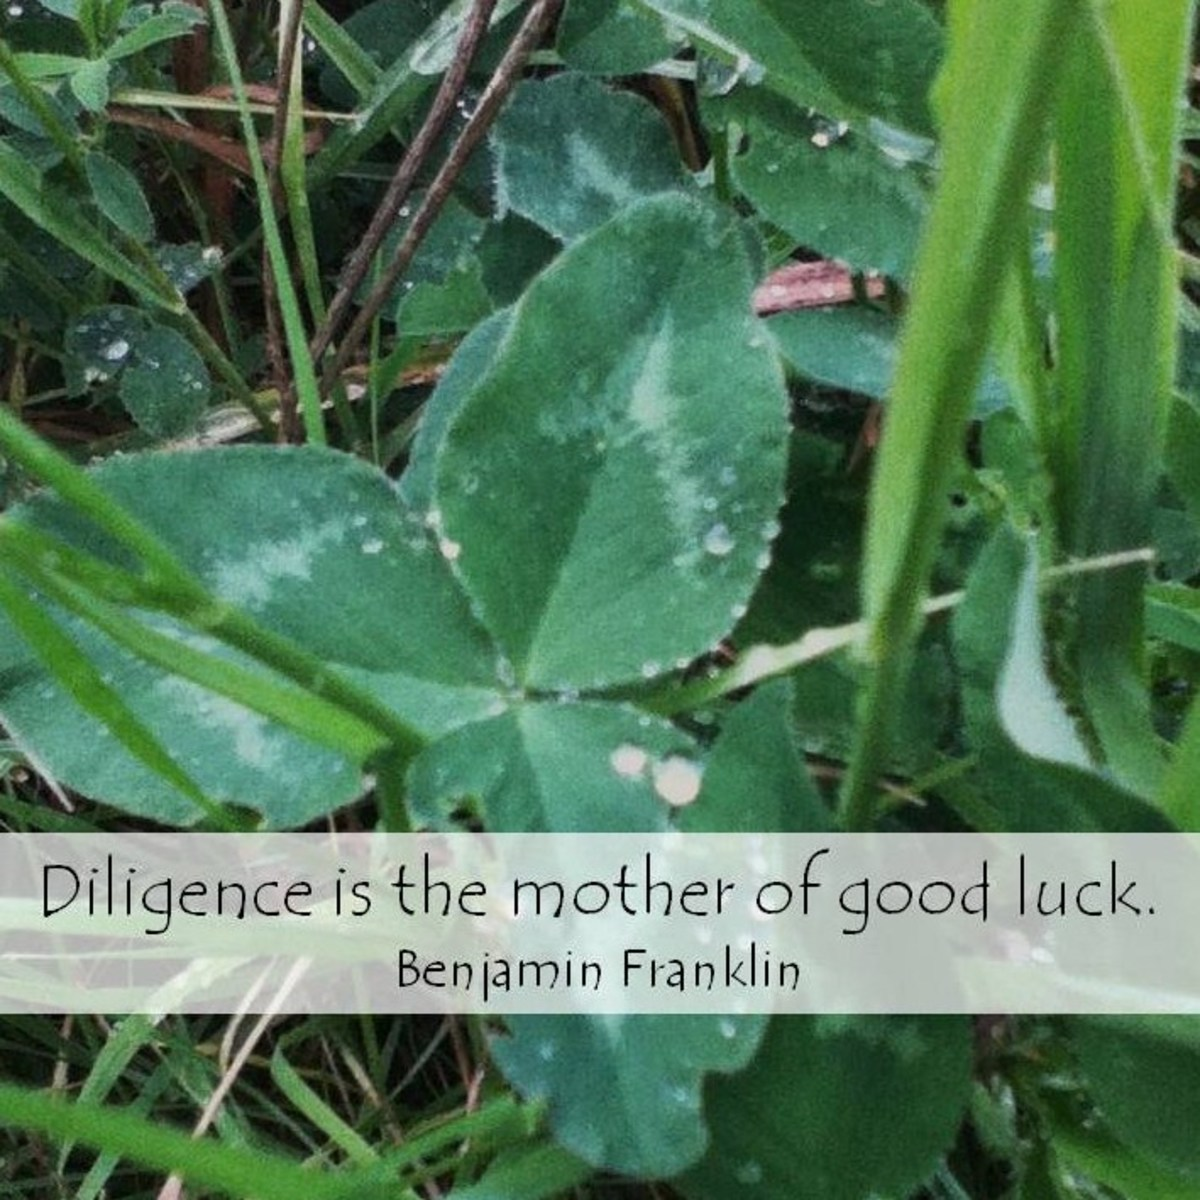 When it comes to finding good luck, do you rely on good luck charms and superstitious beliefs? Or do you believe that you can draw more good luck to you by changing the way you think and behave?